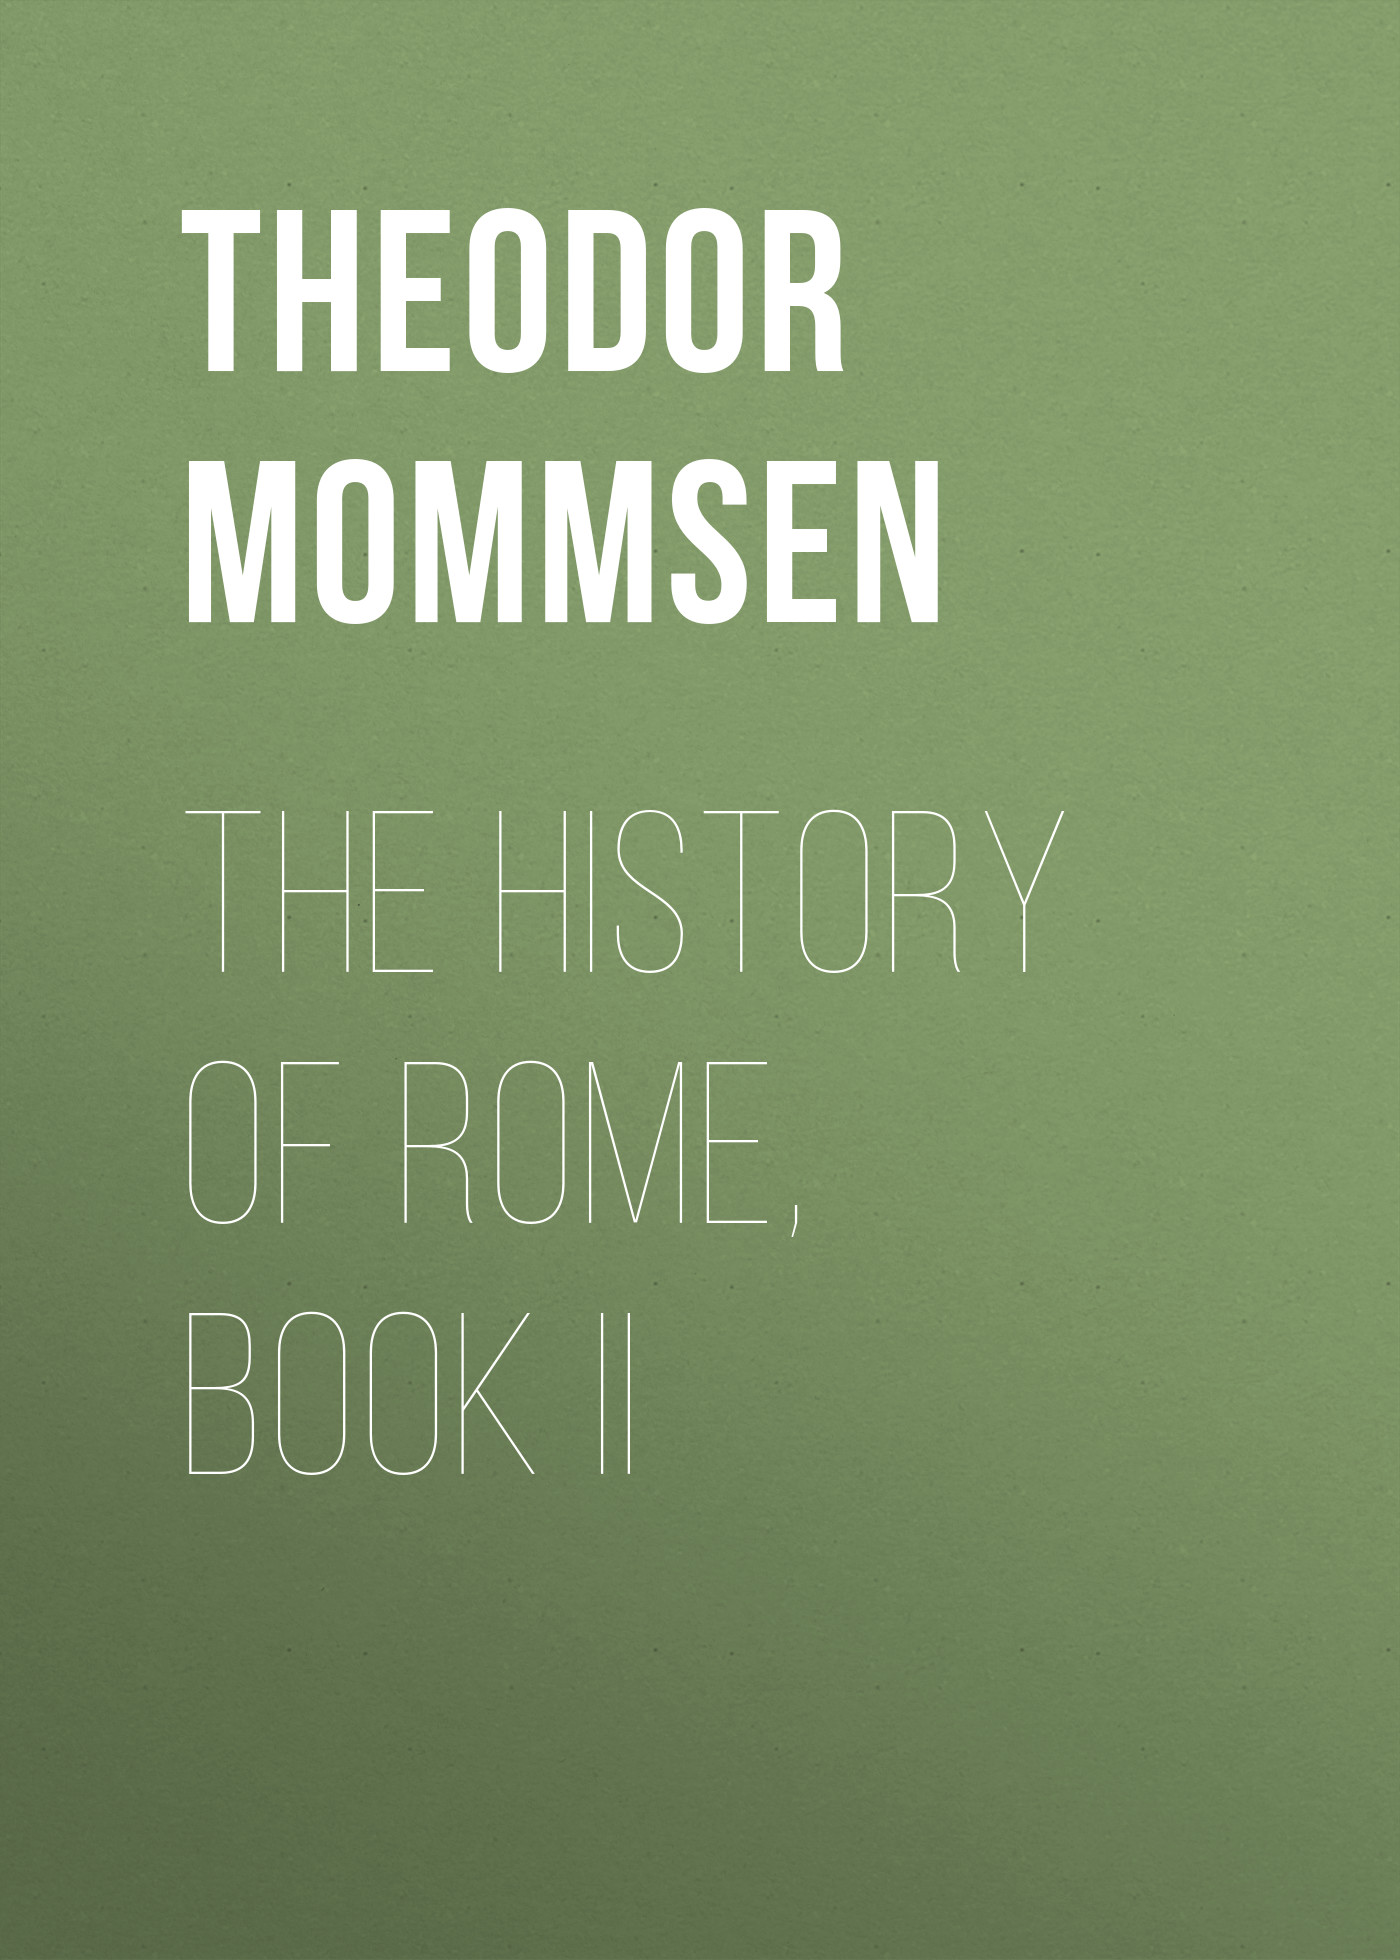 Theodor Mommsen The History of Rome, Book II колье element47 by jv n25360